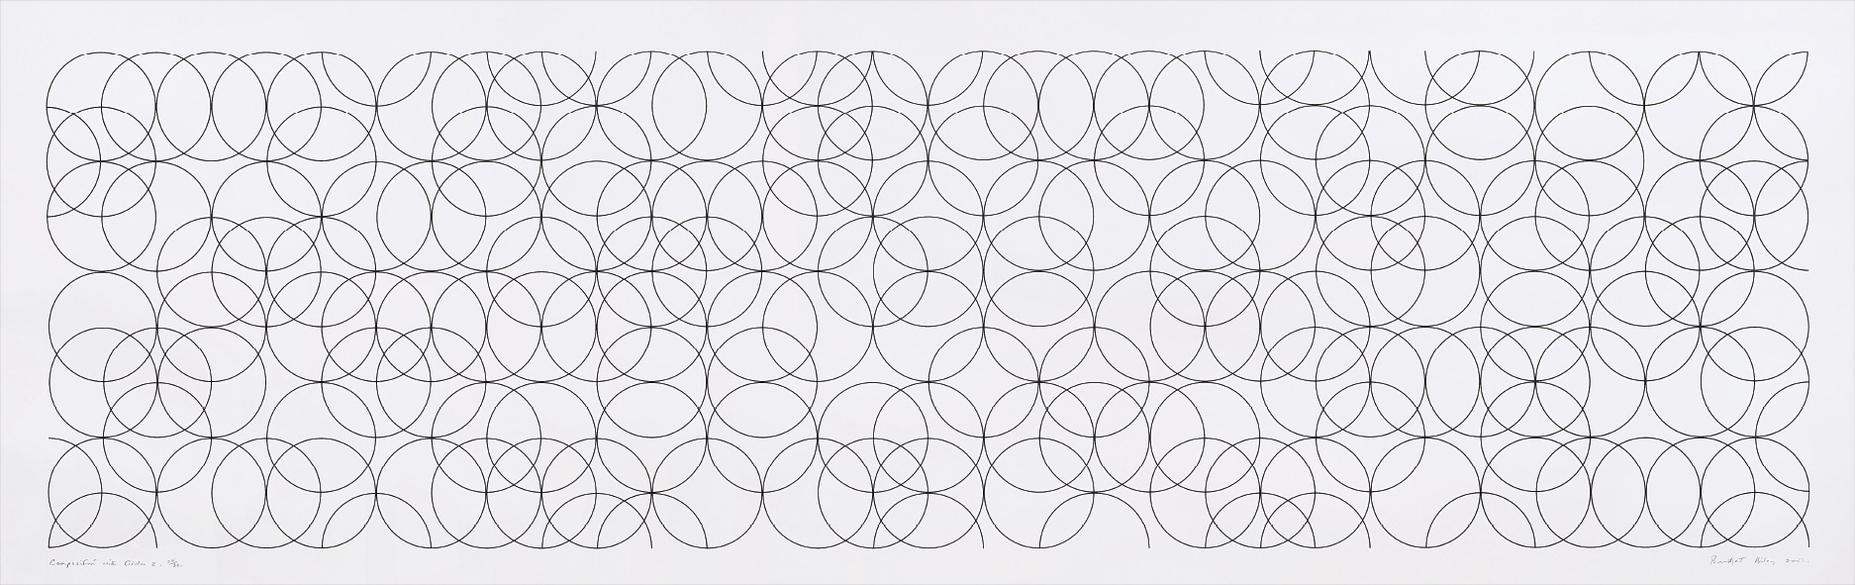 Bridget Riley-Composition With Circles 2-2001